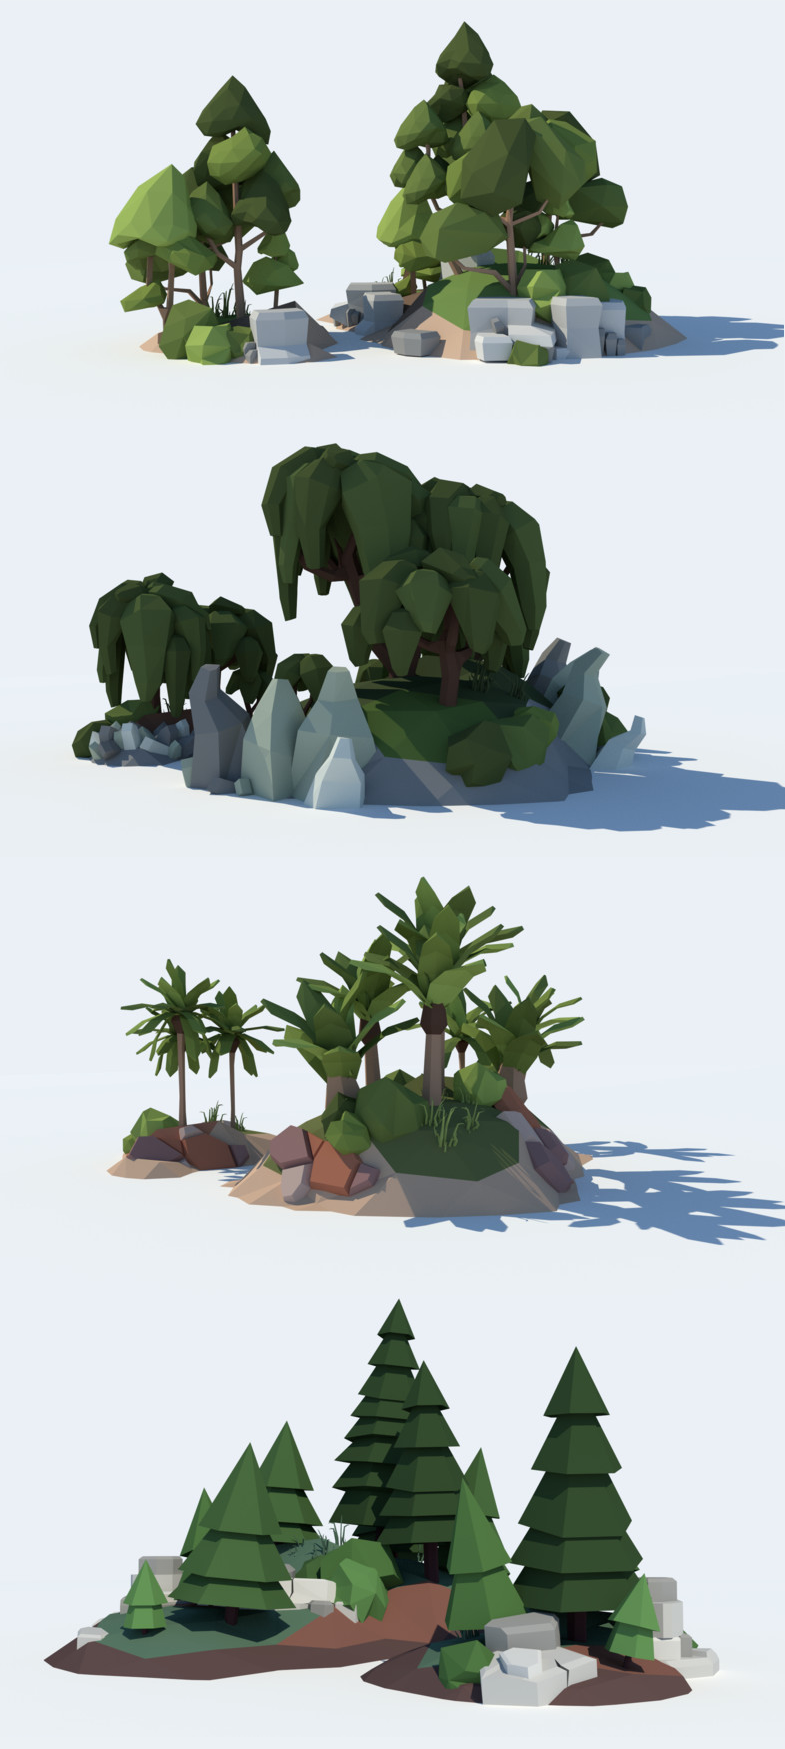 Low Poly Tree Pack  Unity 3D Game Asset  Contains 38